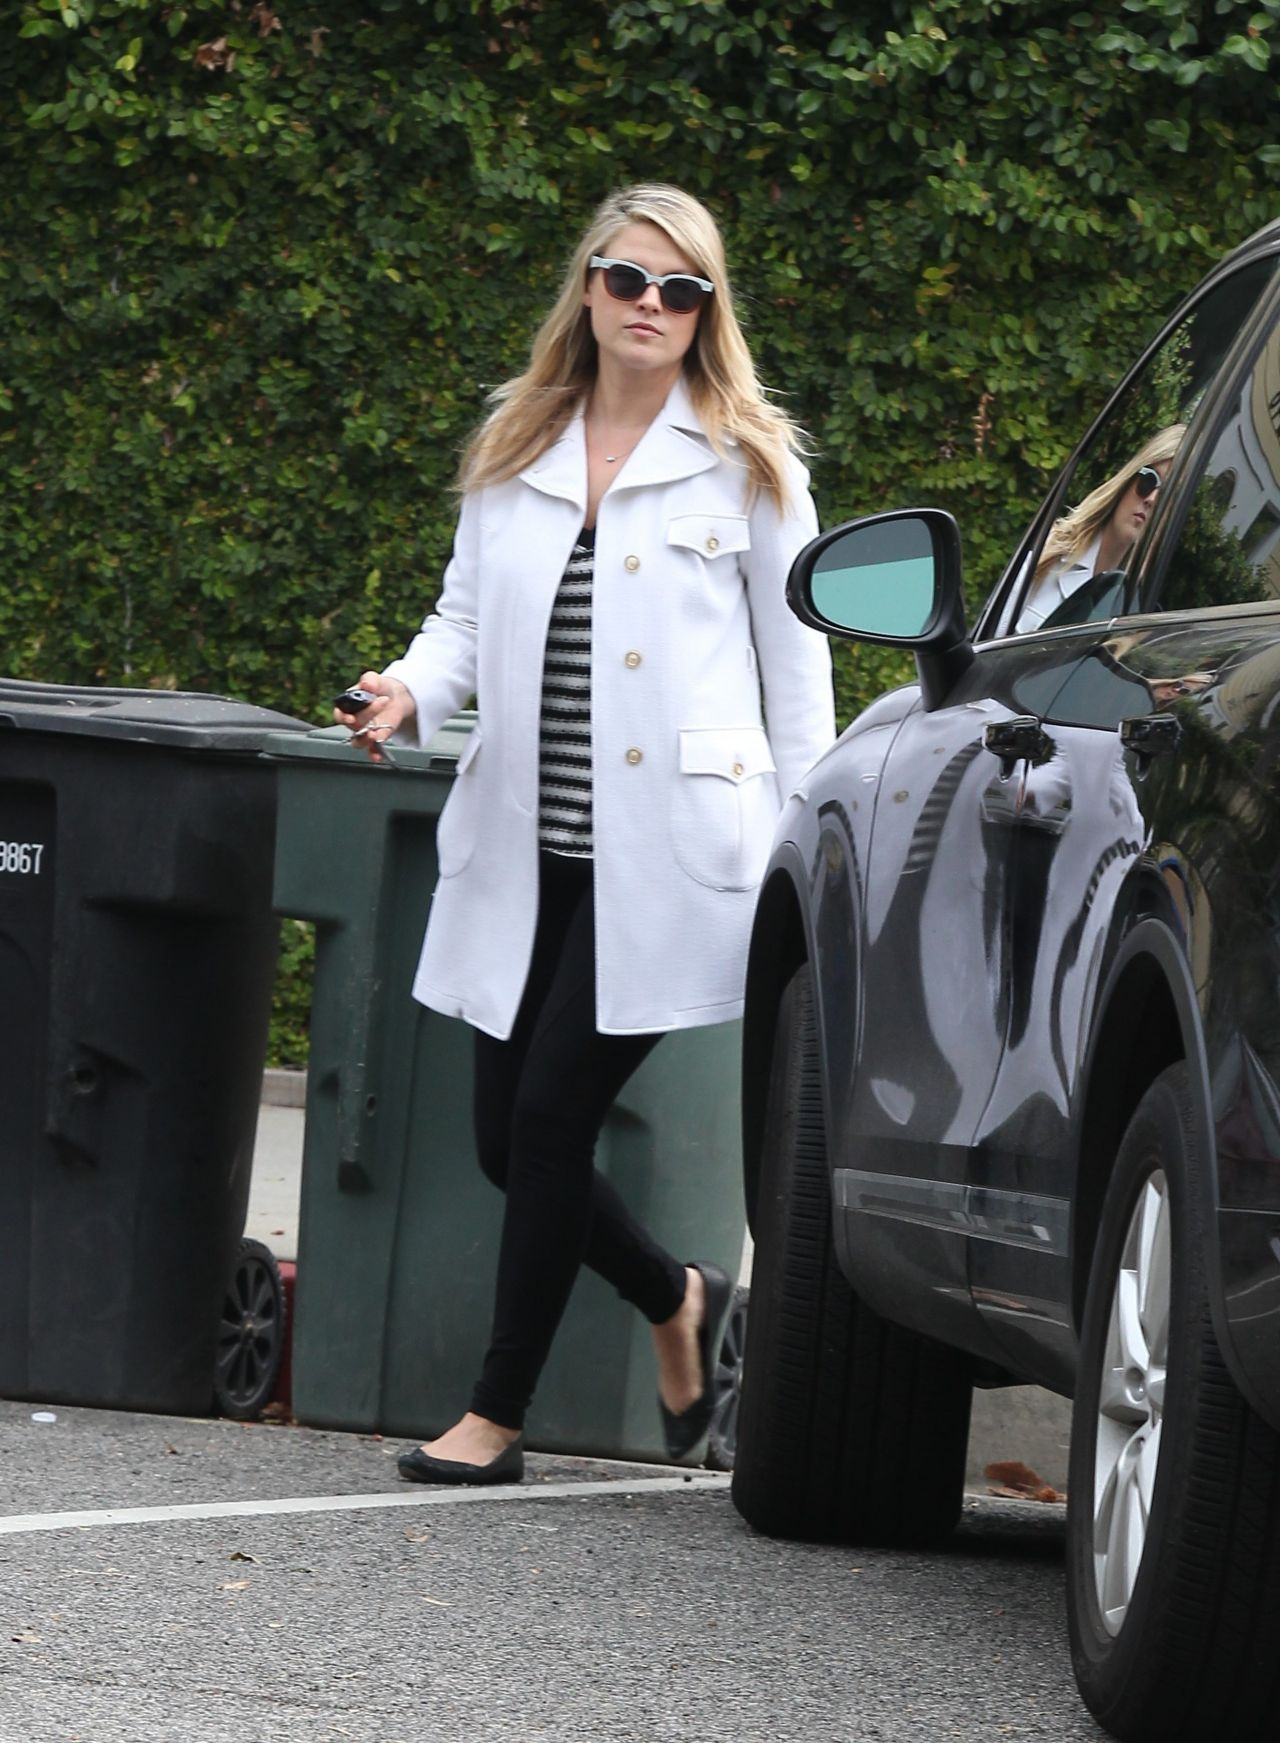 Ali Larter Style - Leaving The Walther School in West Hollywood, February 2015